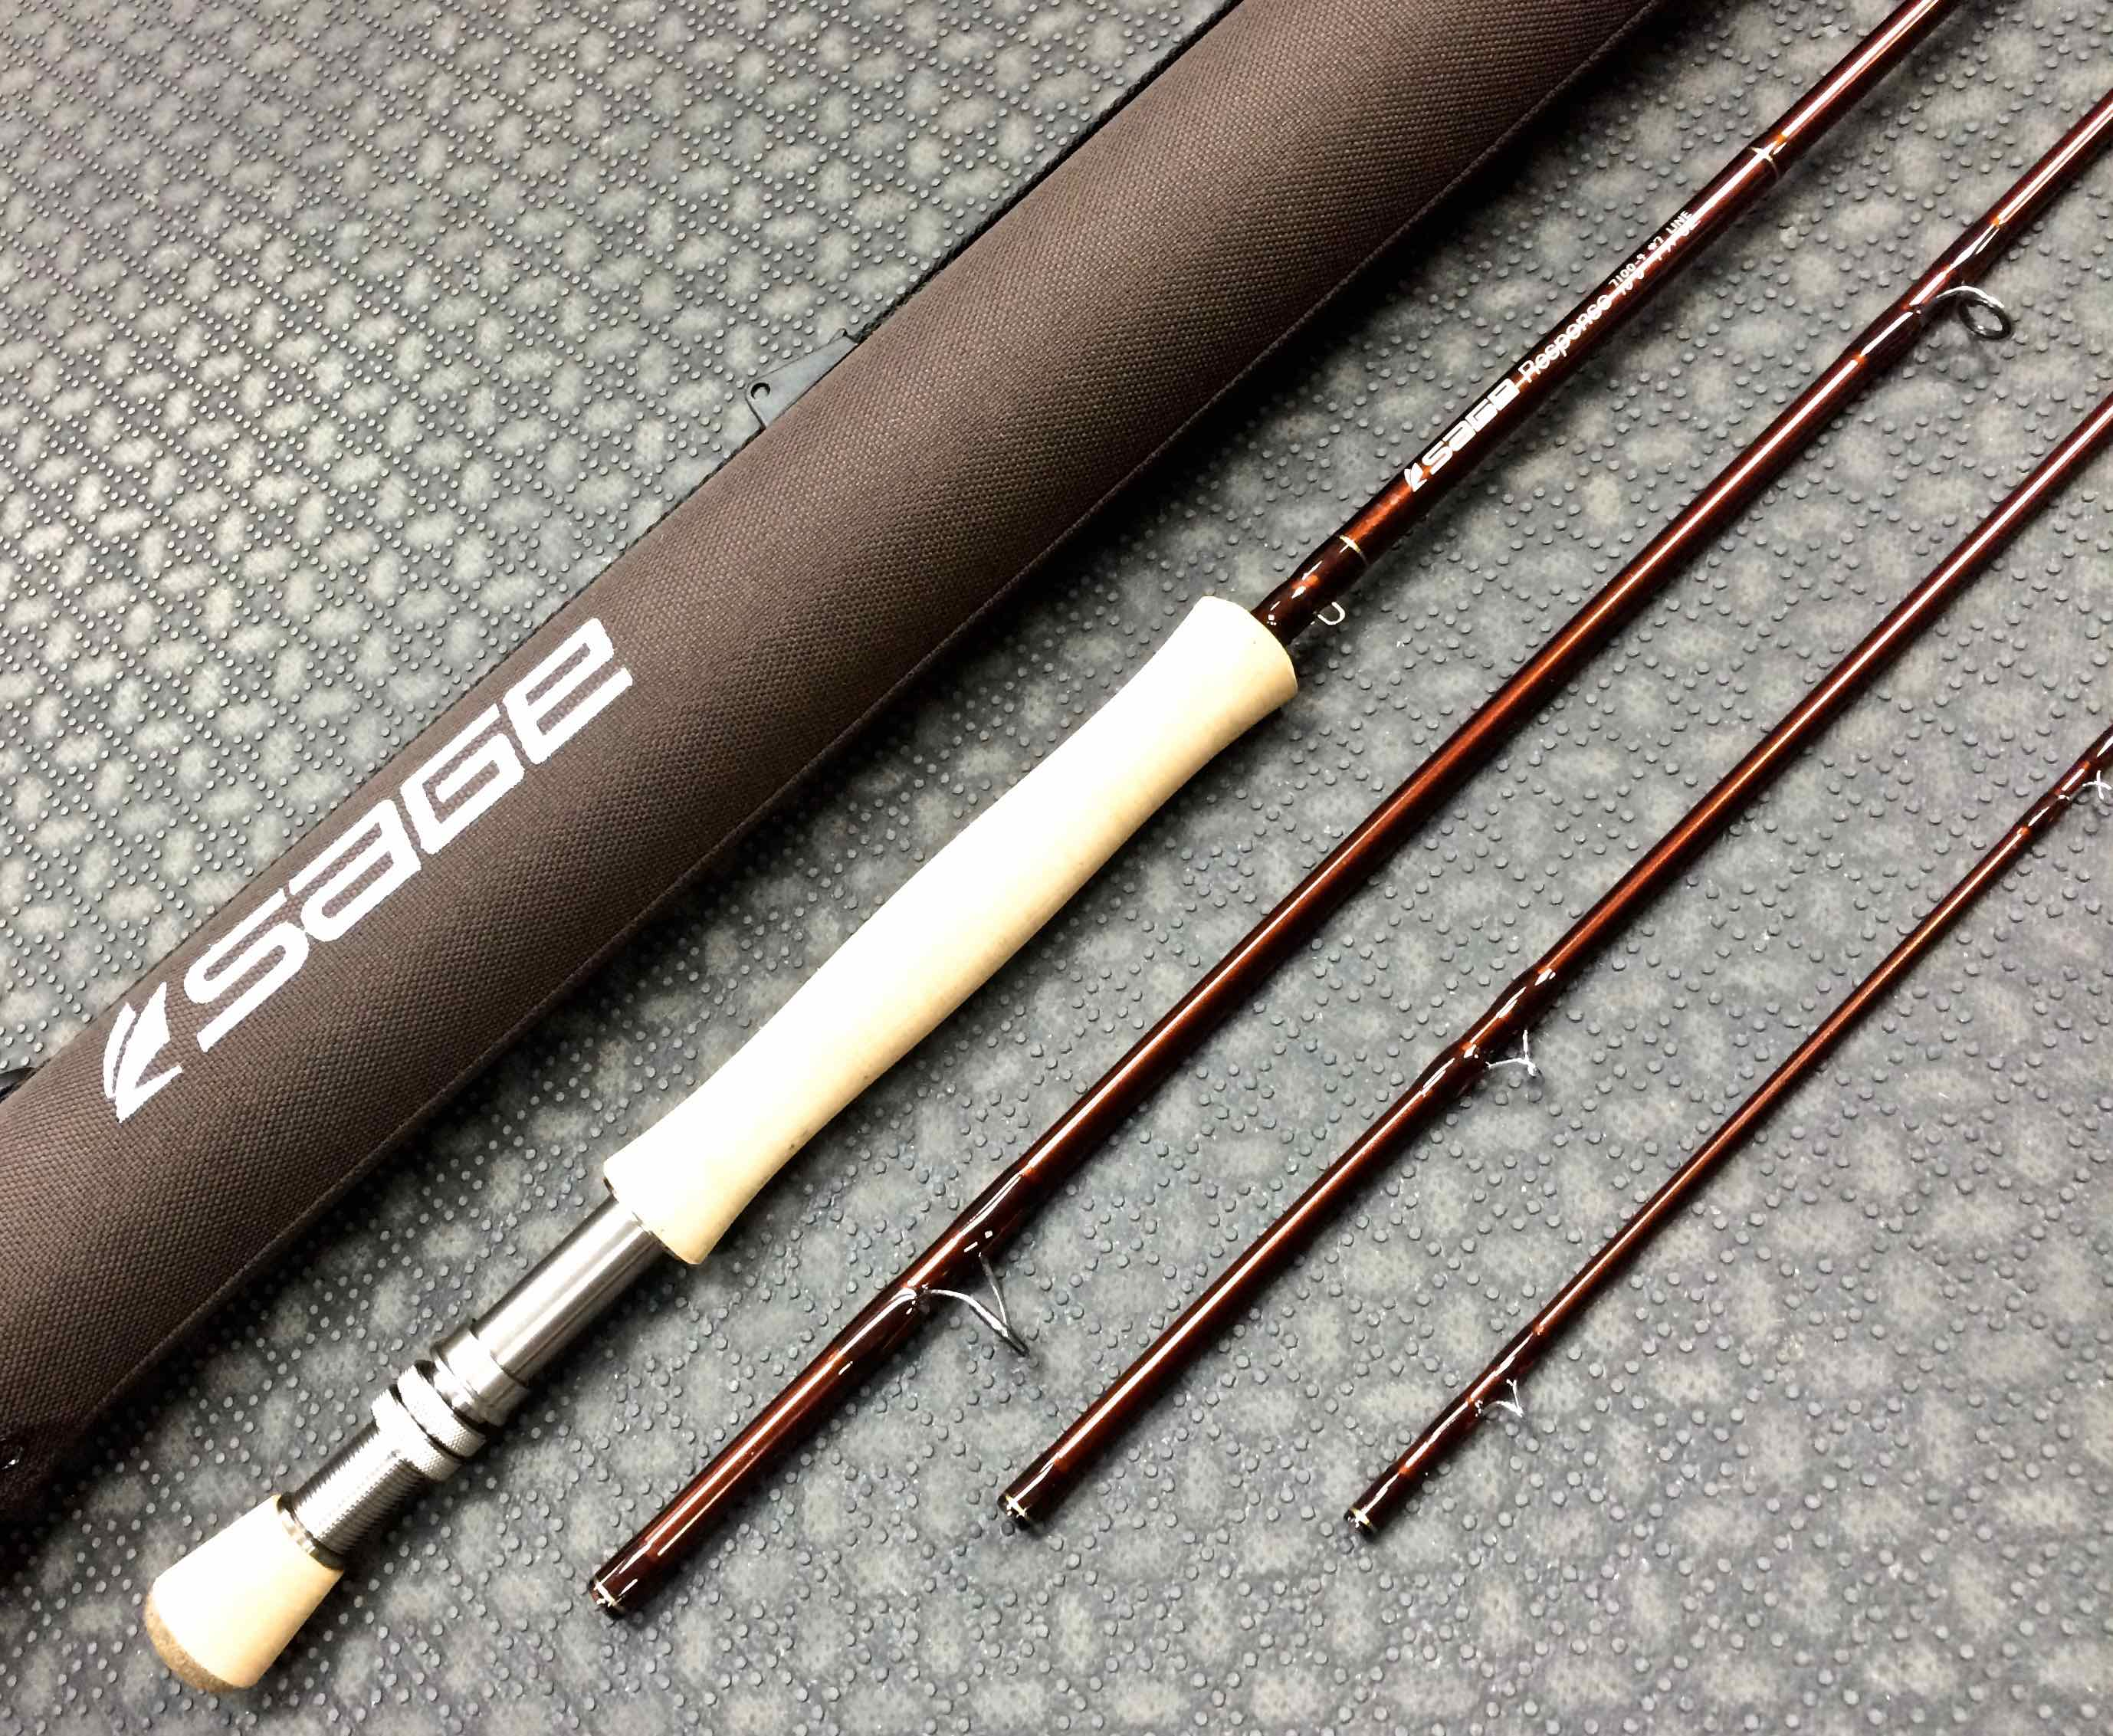 Sold sage response fly rod 7100 4 10 39 7wt 4pc for Best fishing pole brands